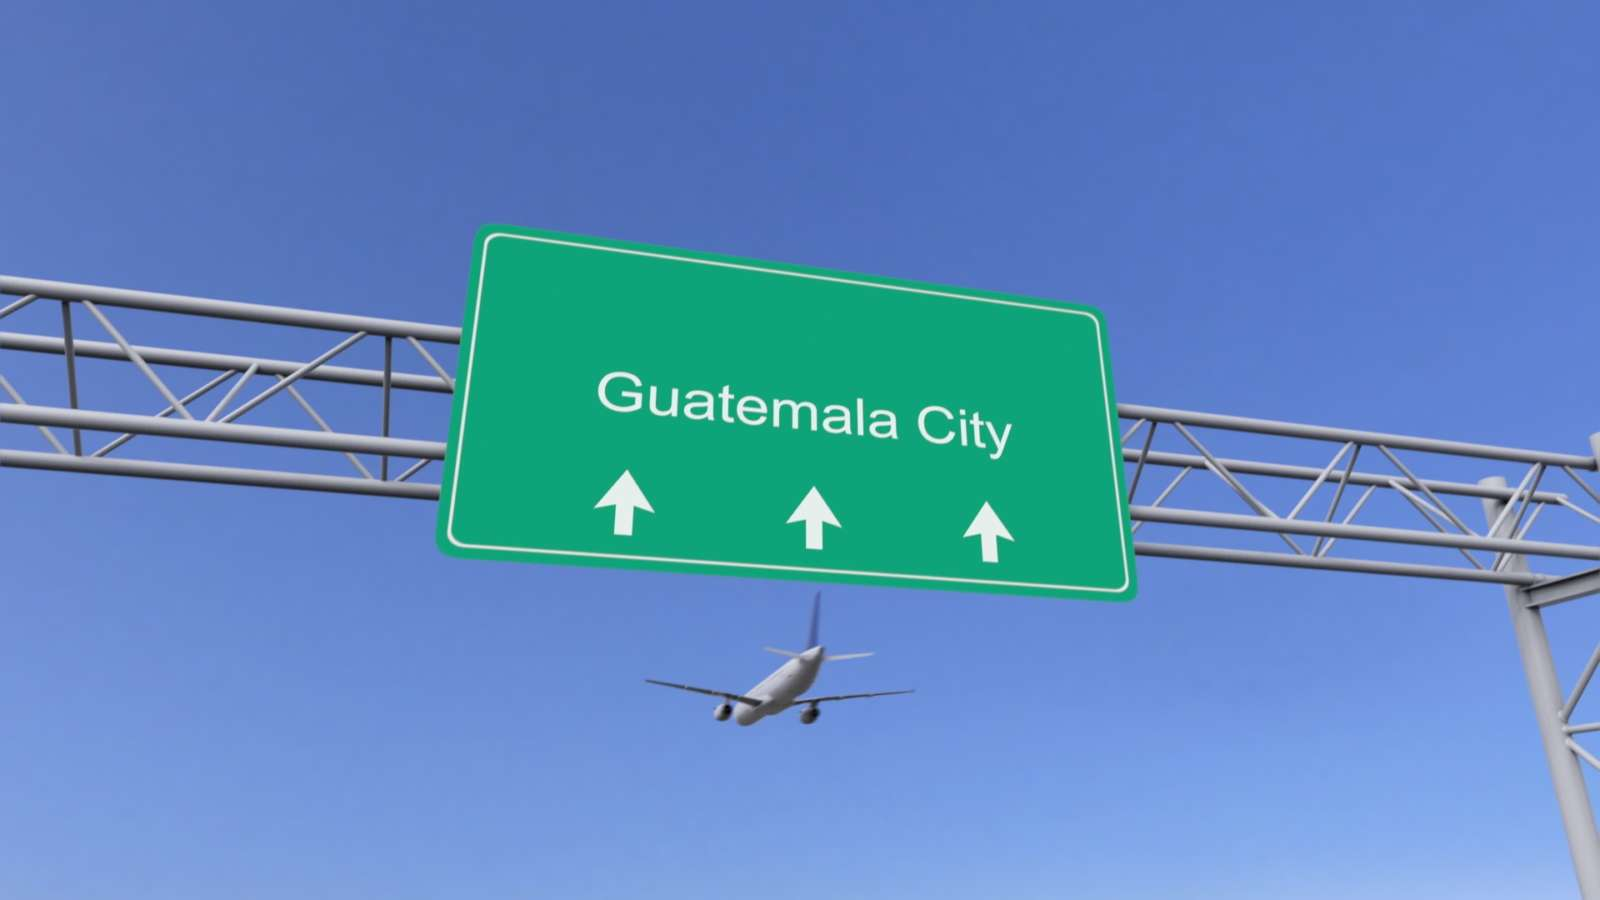 Guatemala City sign with plane